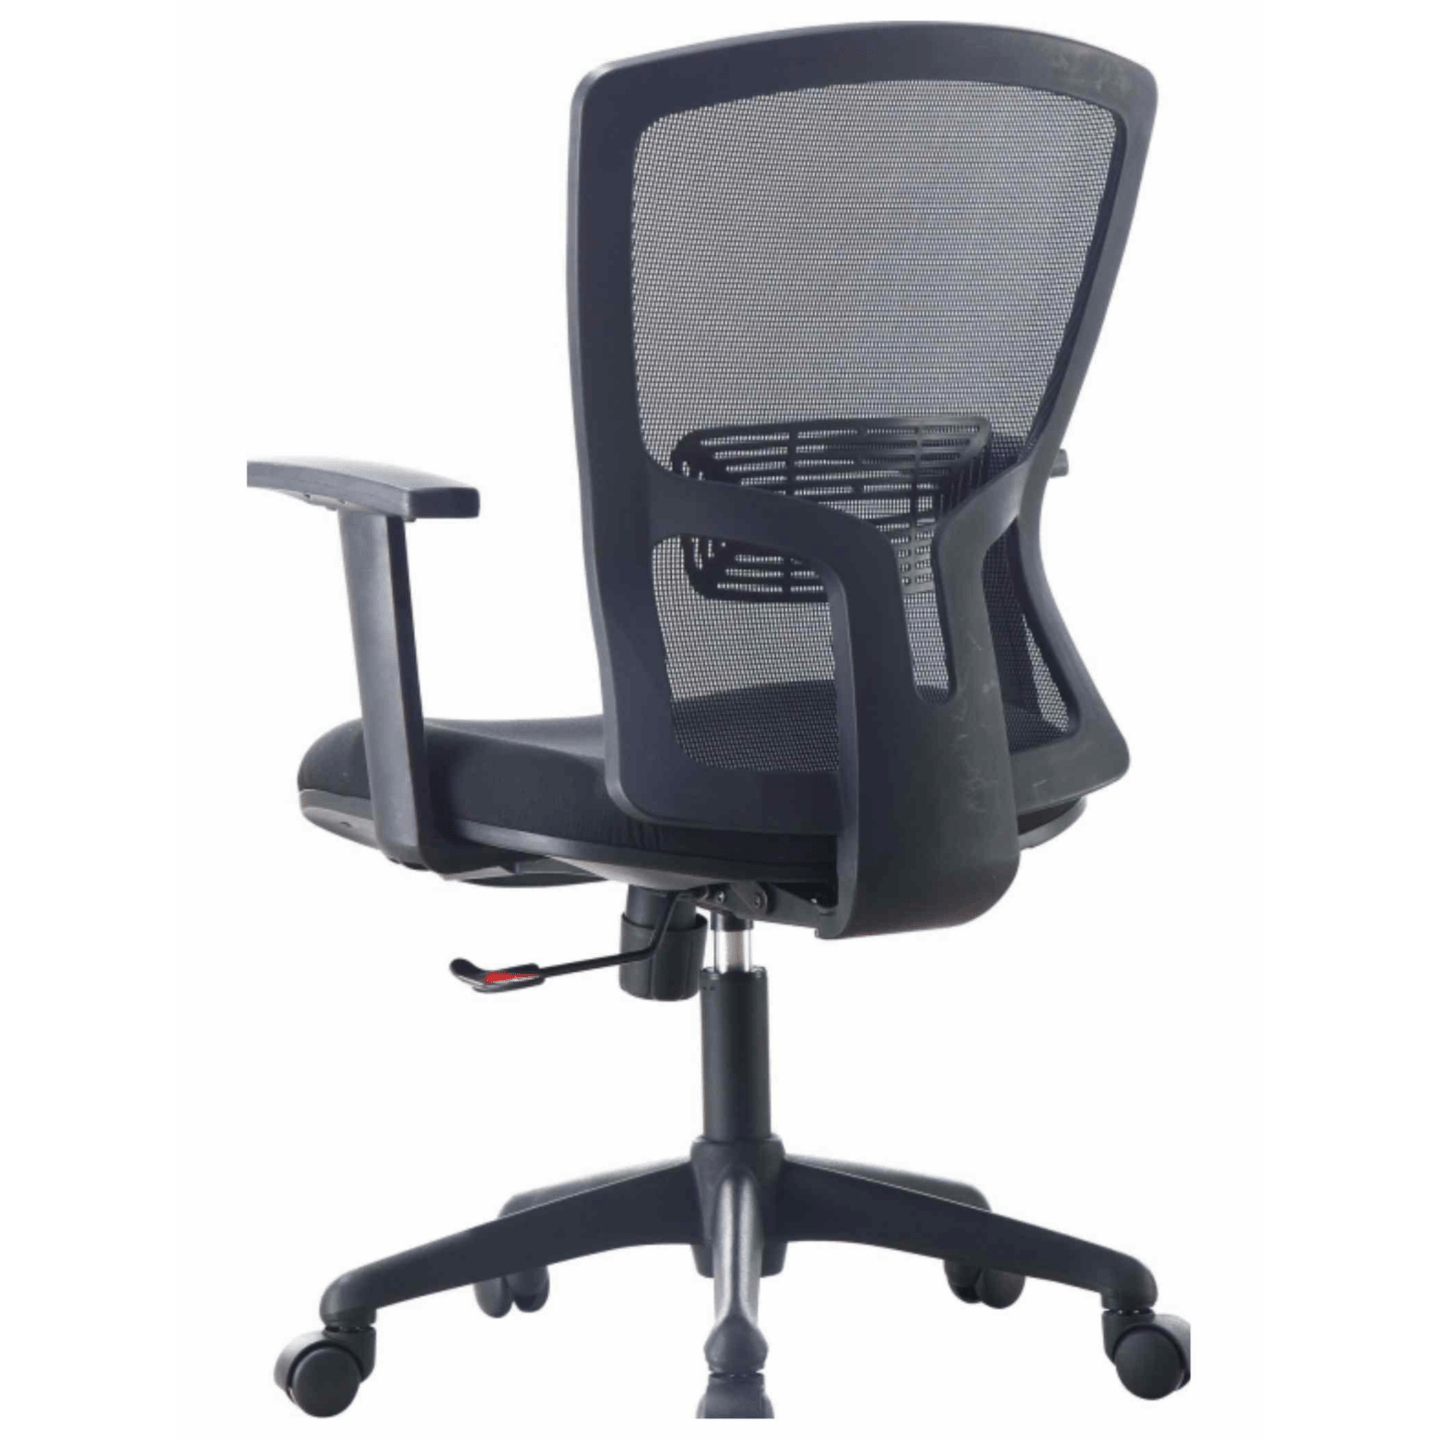 Comfortable Home Office Chair Model - Jazz